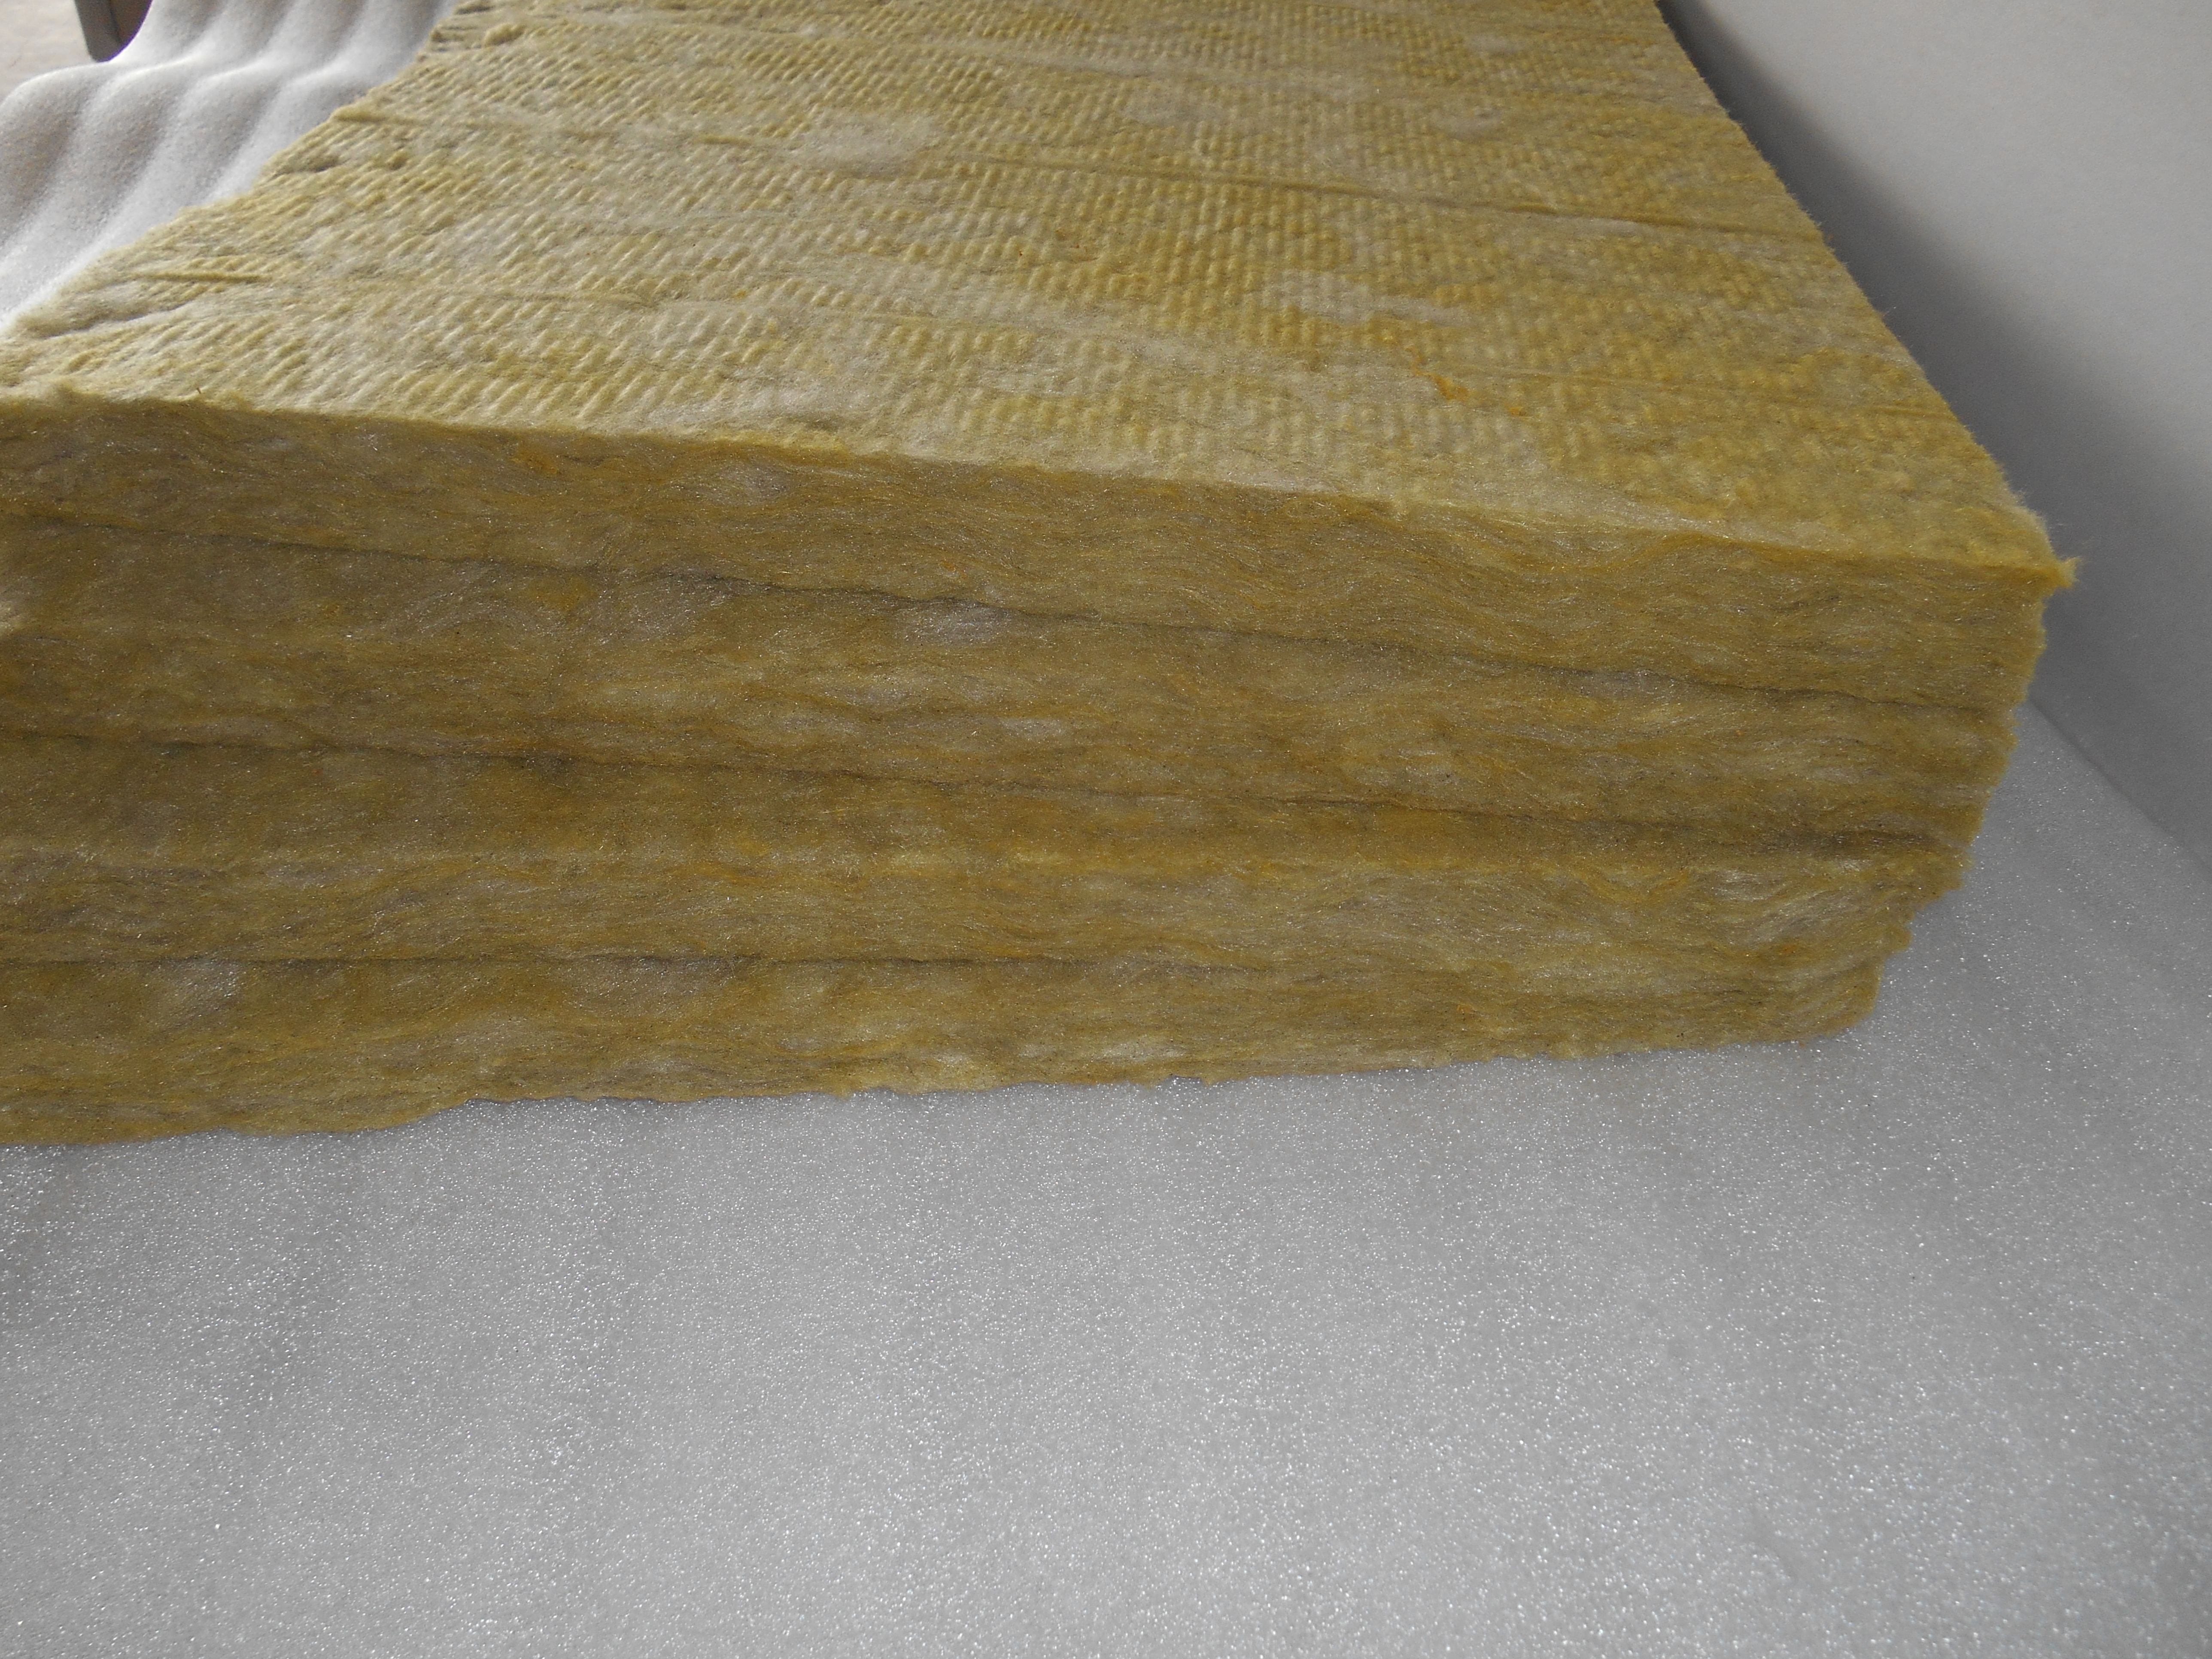 Rock wool boards izocam di trade group building for Mineral wool insulation health and safety